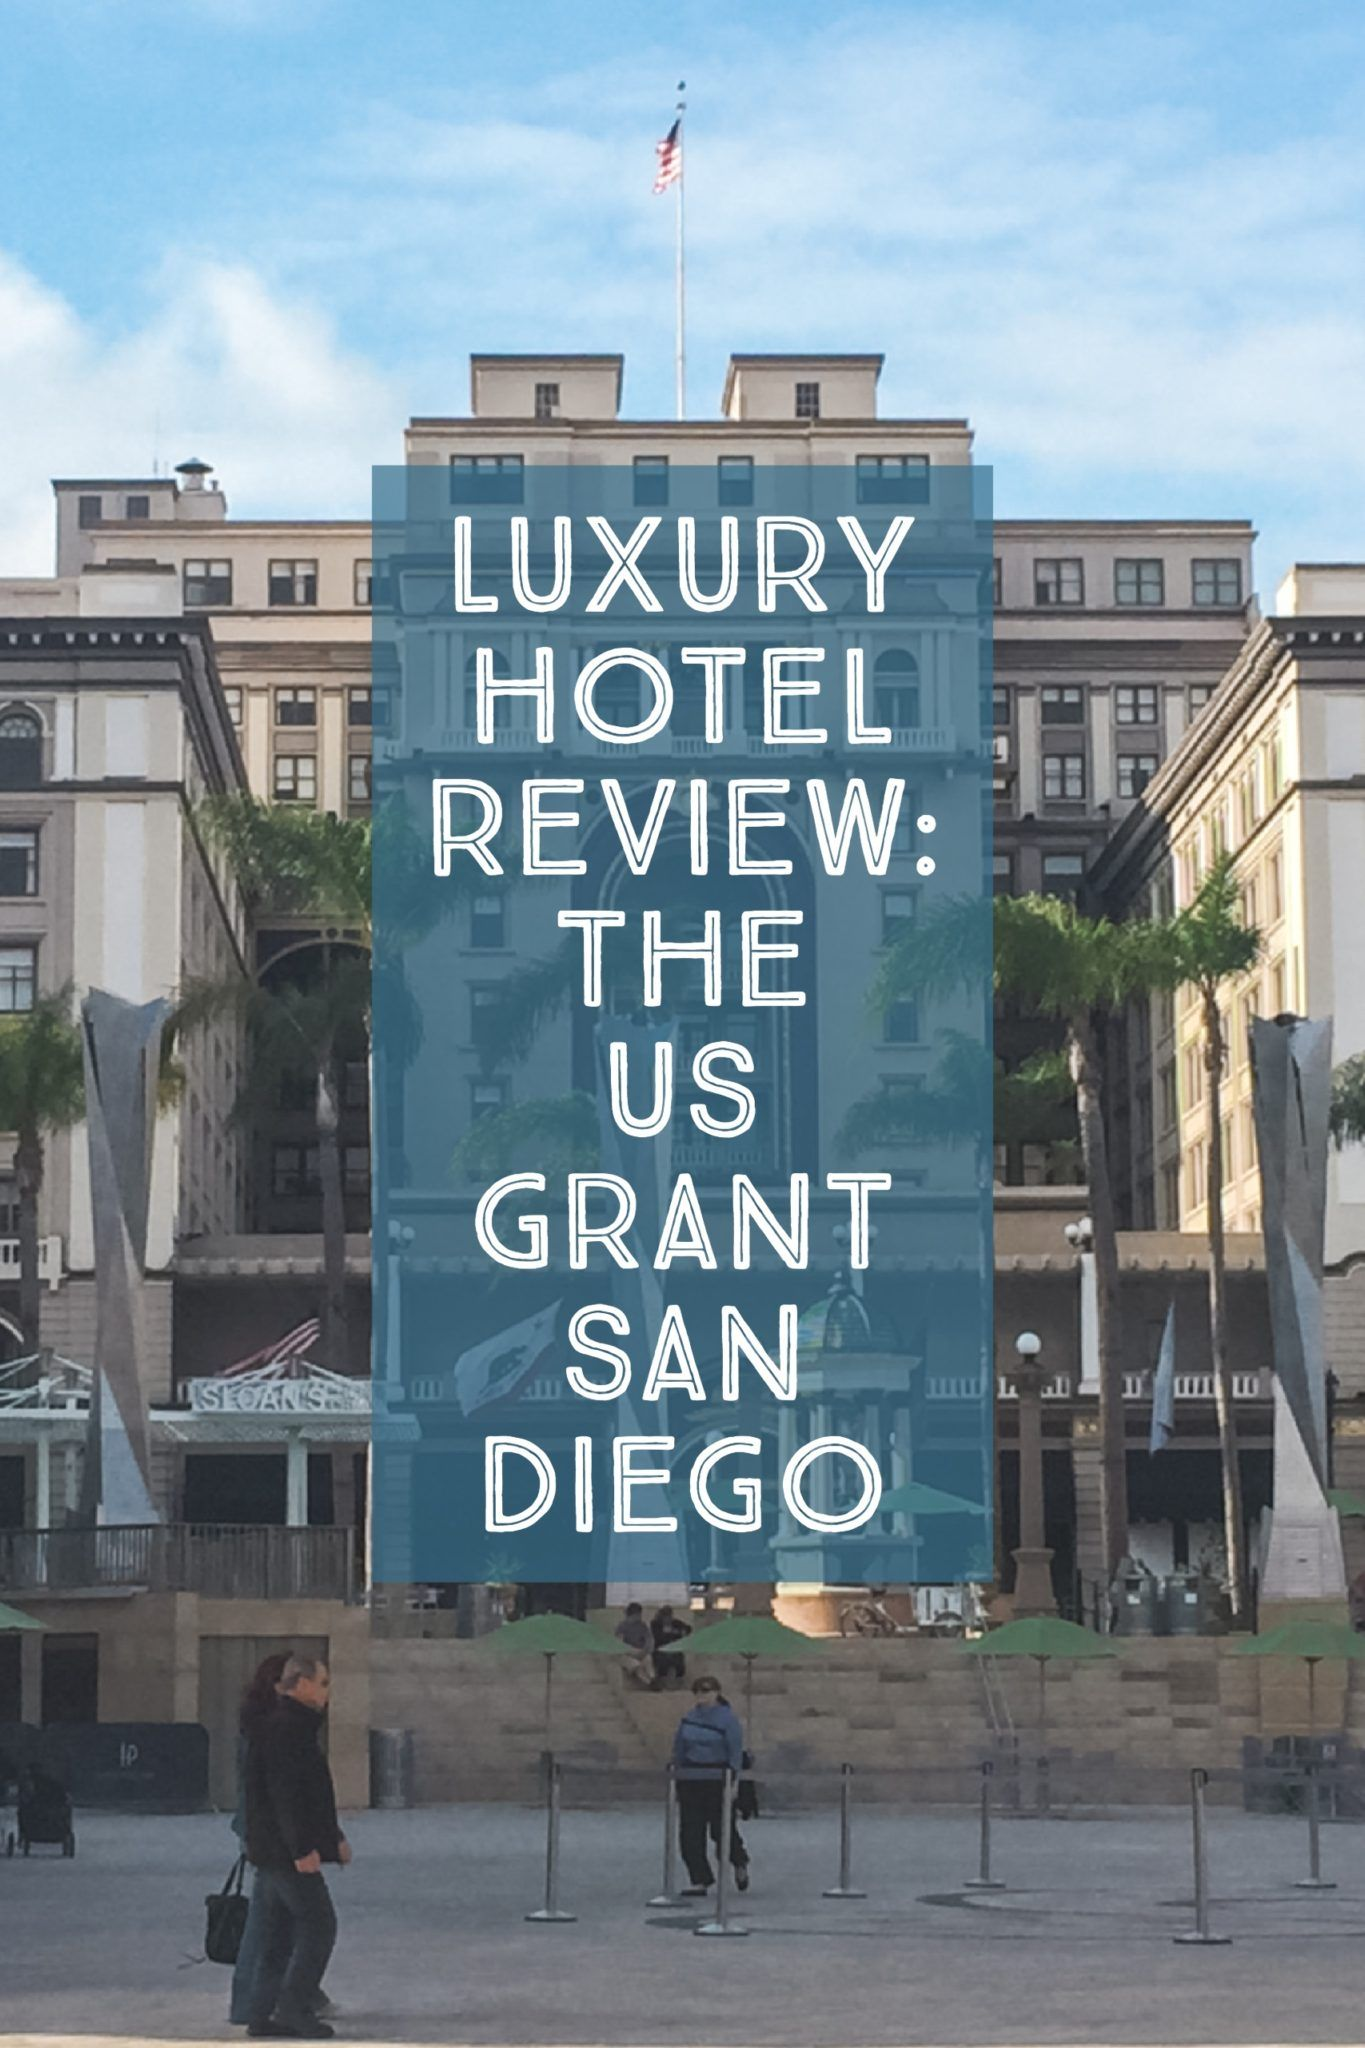 Luxury Hotel Review: The US Grant San Diego